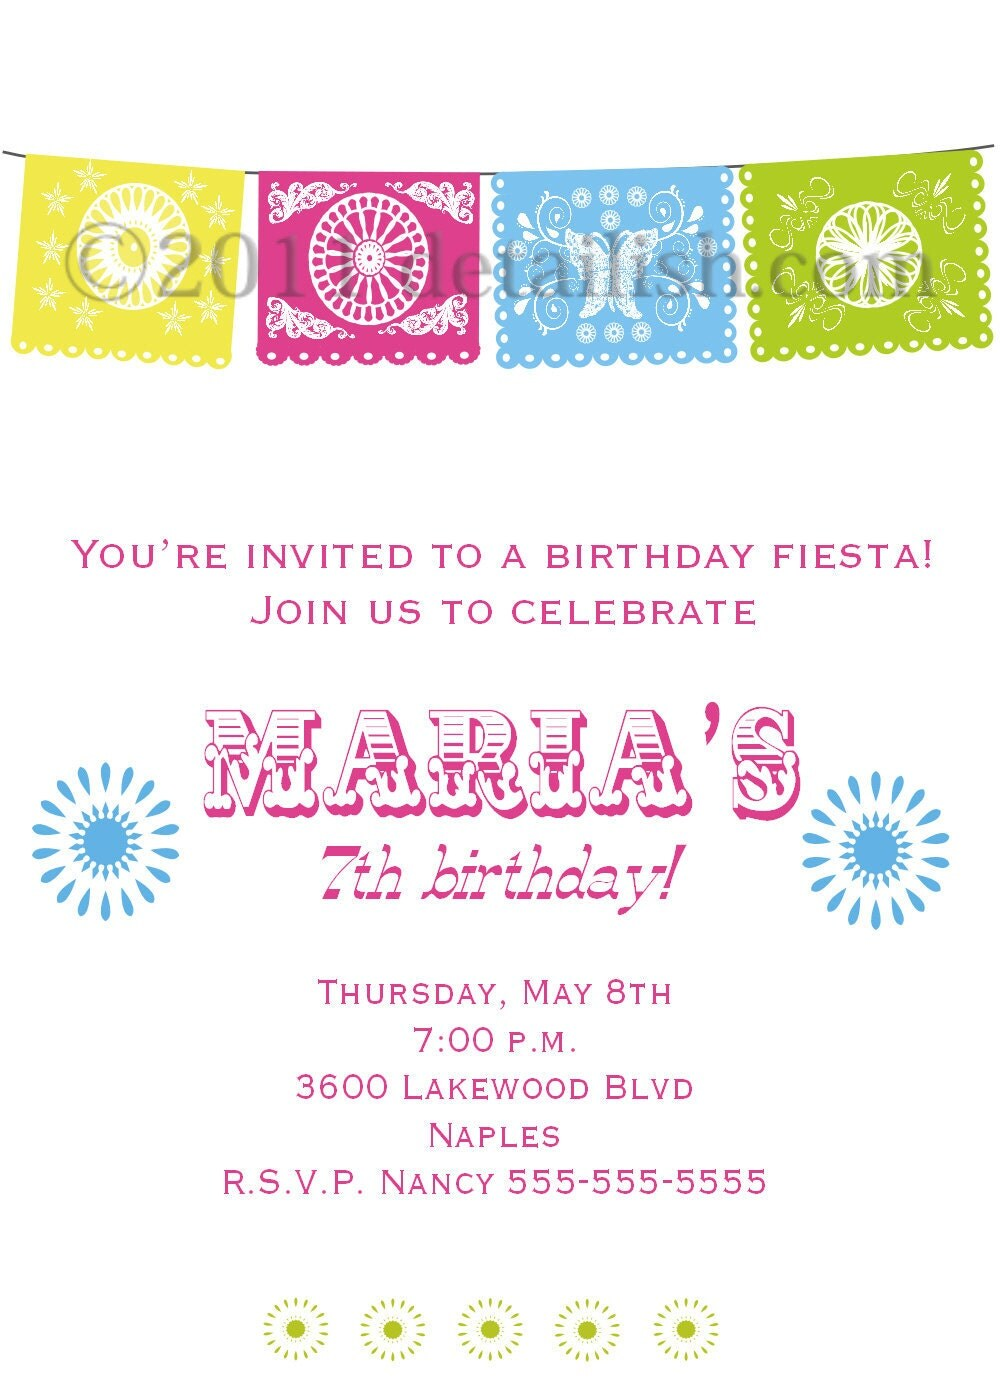 Norwex Party Invitation was perfect invitation layout